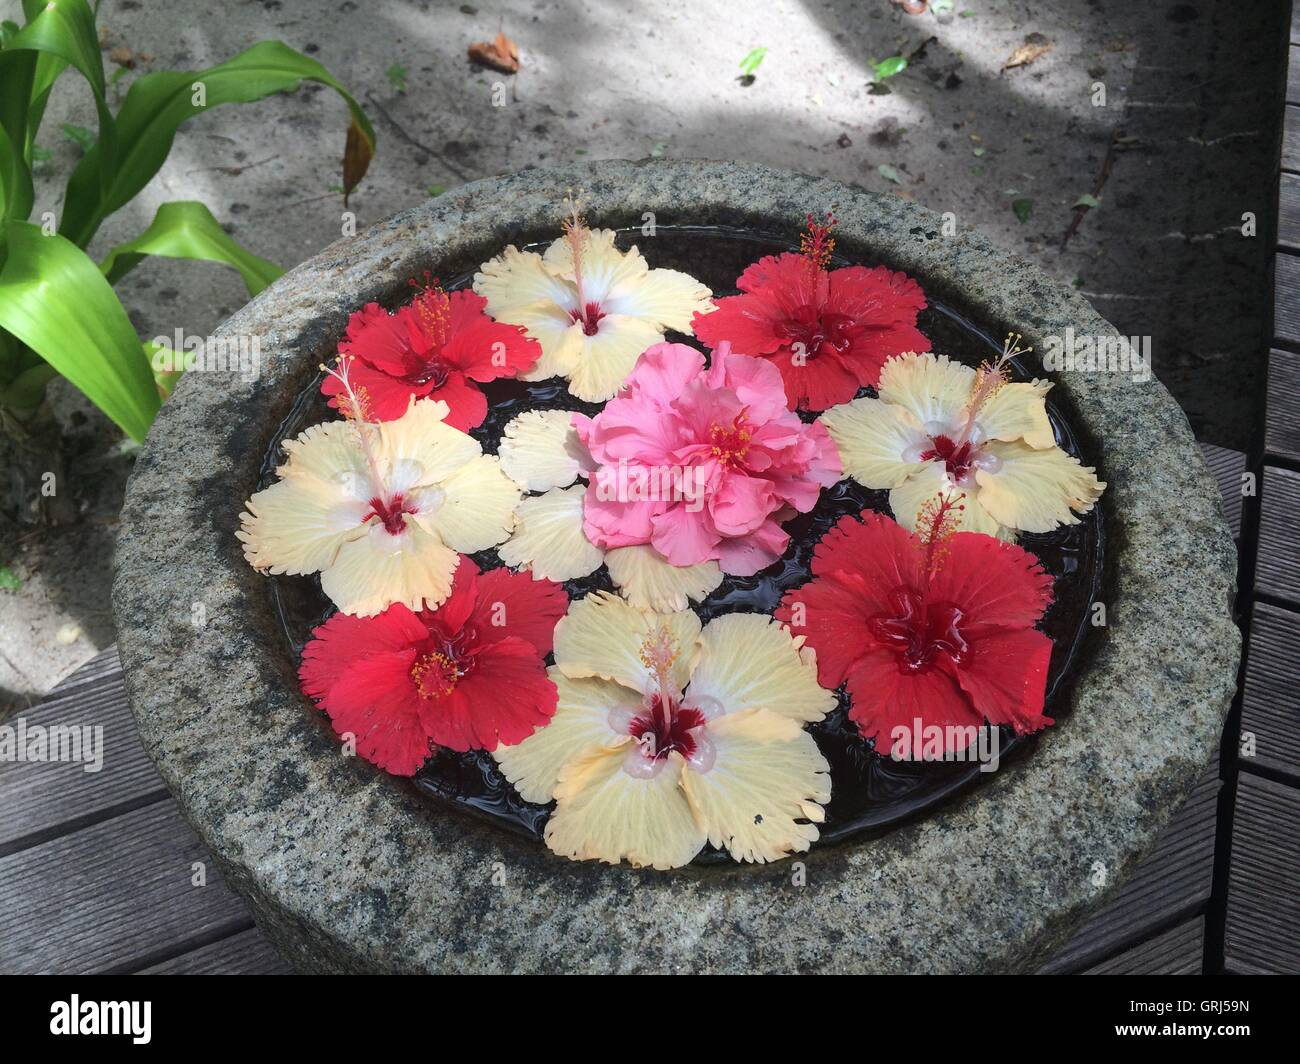 Flower Arrangement Floating Outdoors In A Bowl Stock Photo